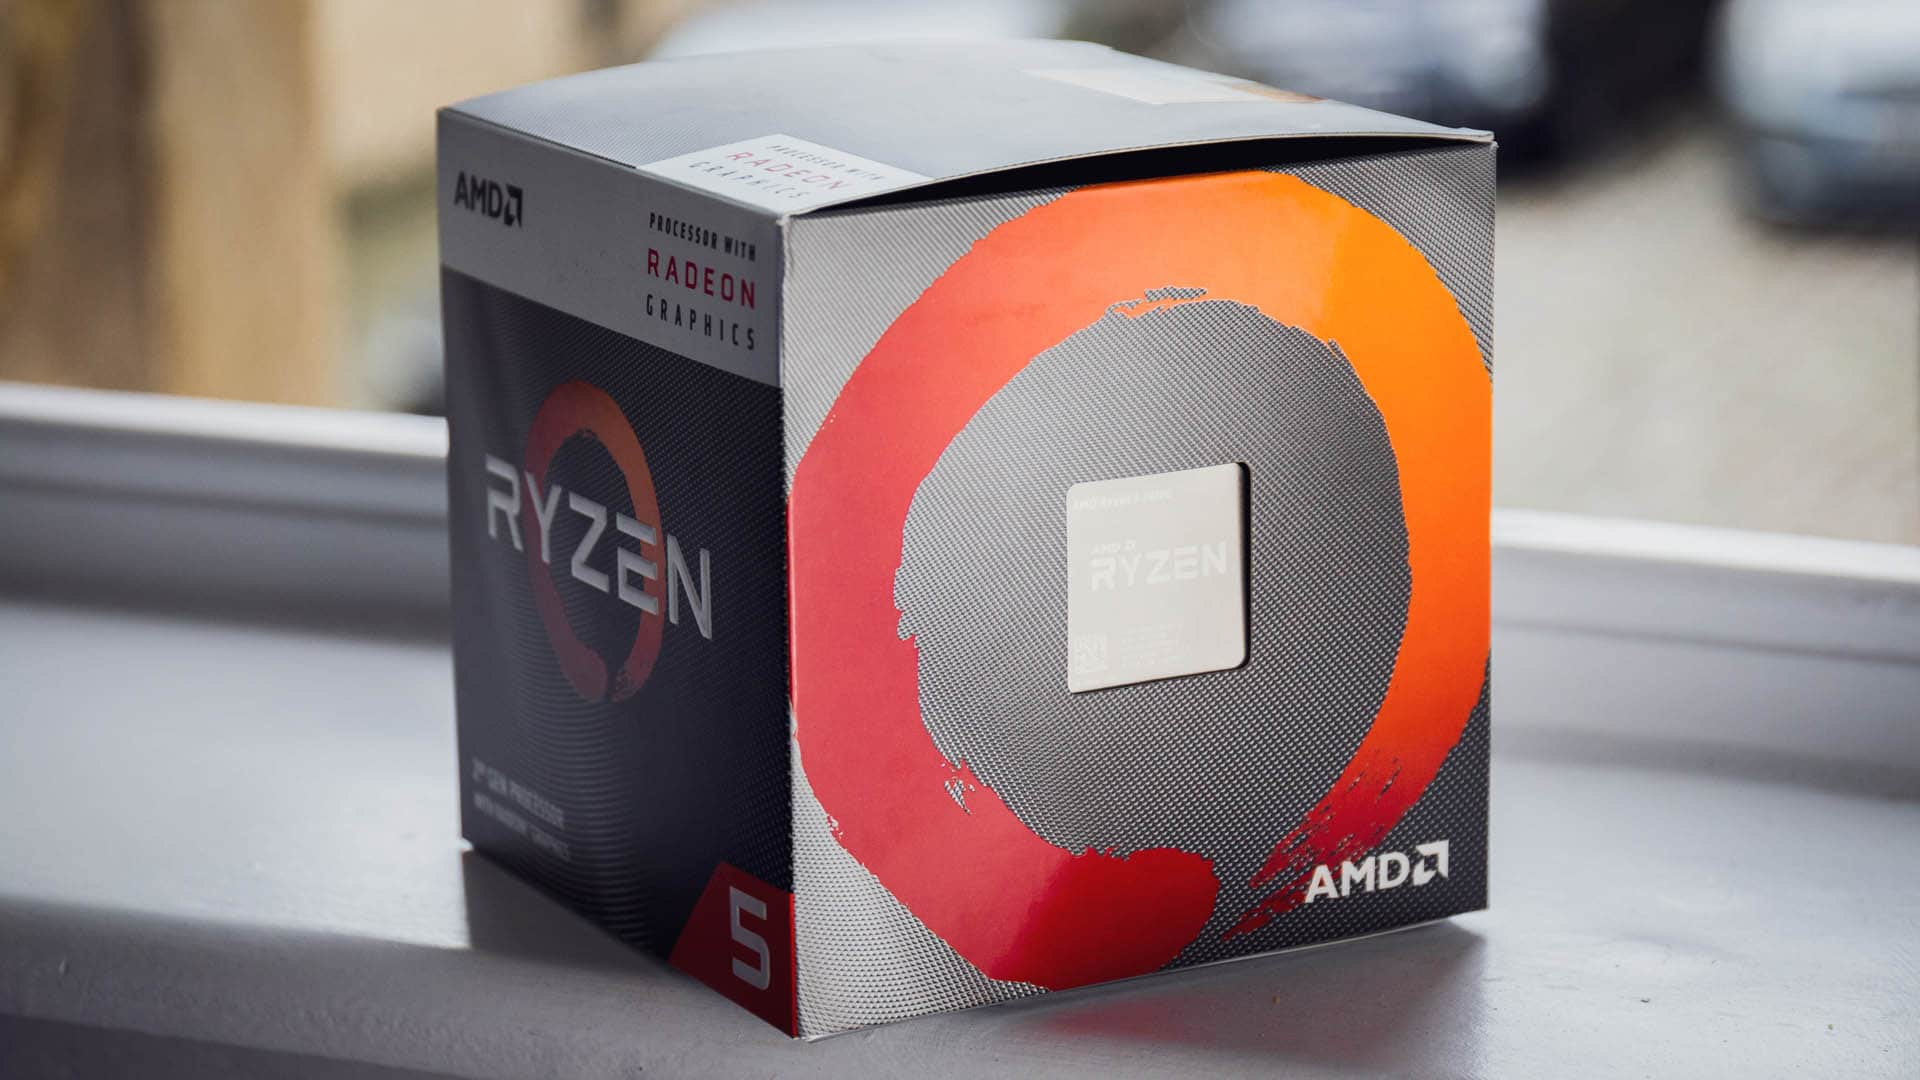 AMD reportedly prepping Ryzen 9 APU to tackle Intel Tiger Lake